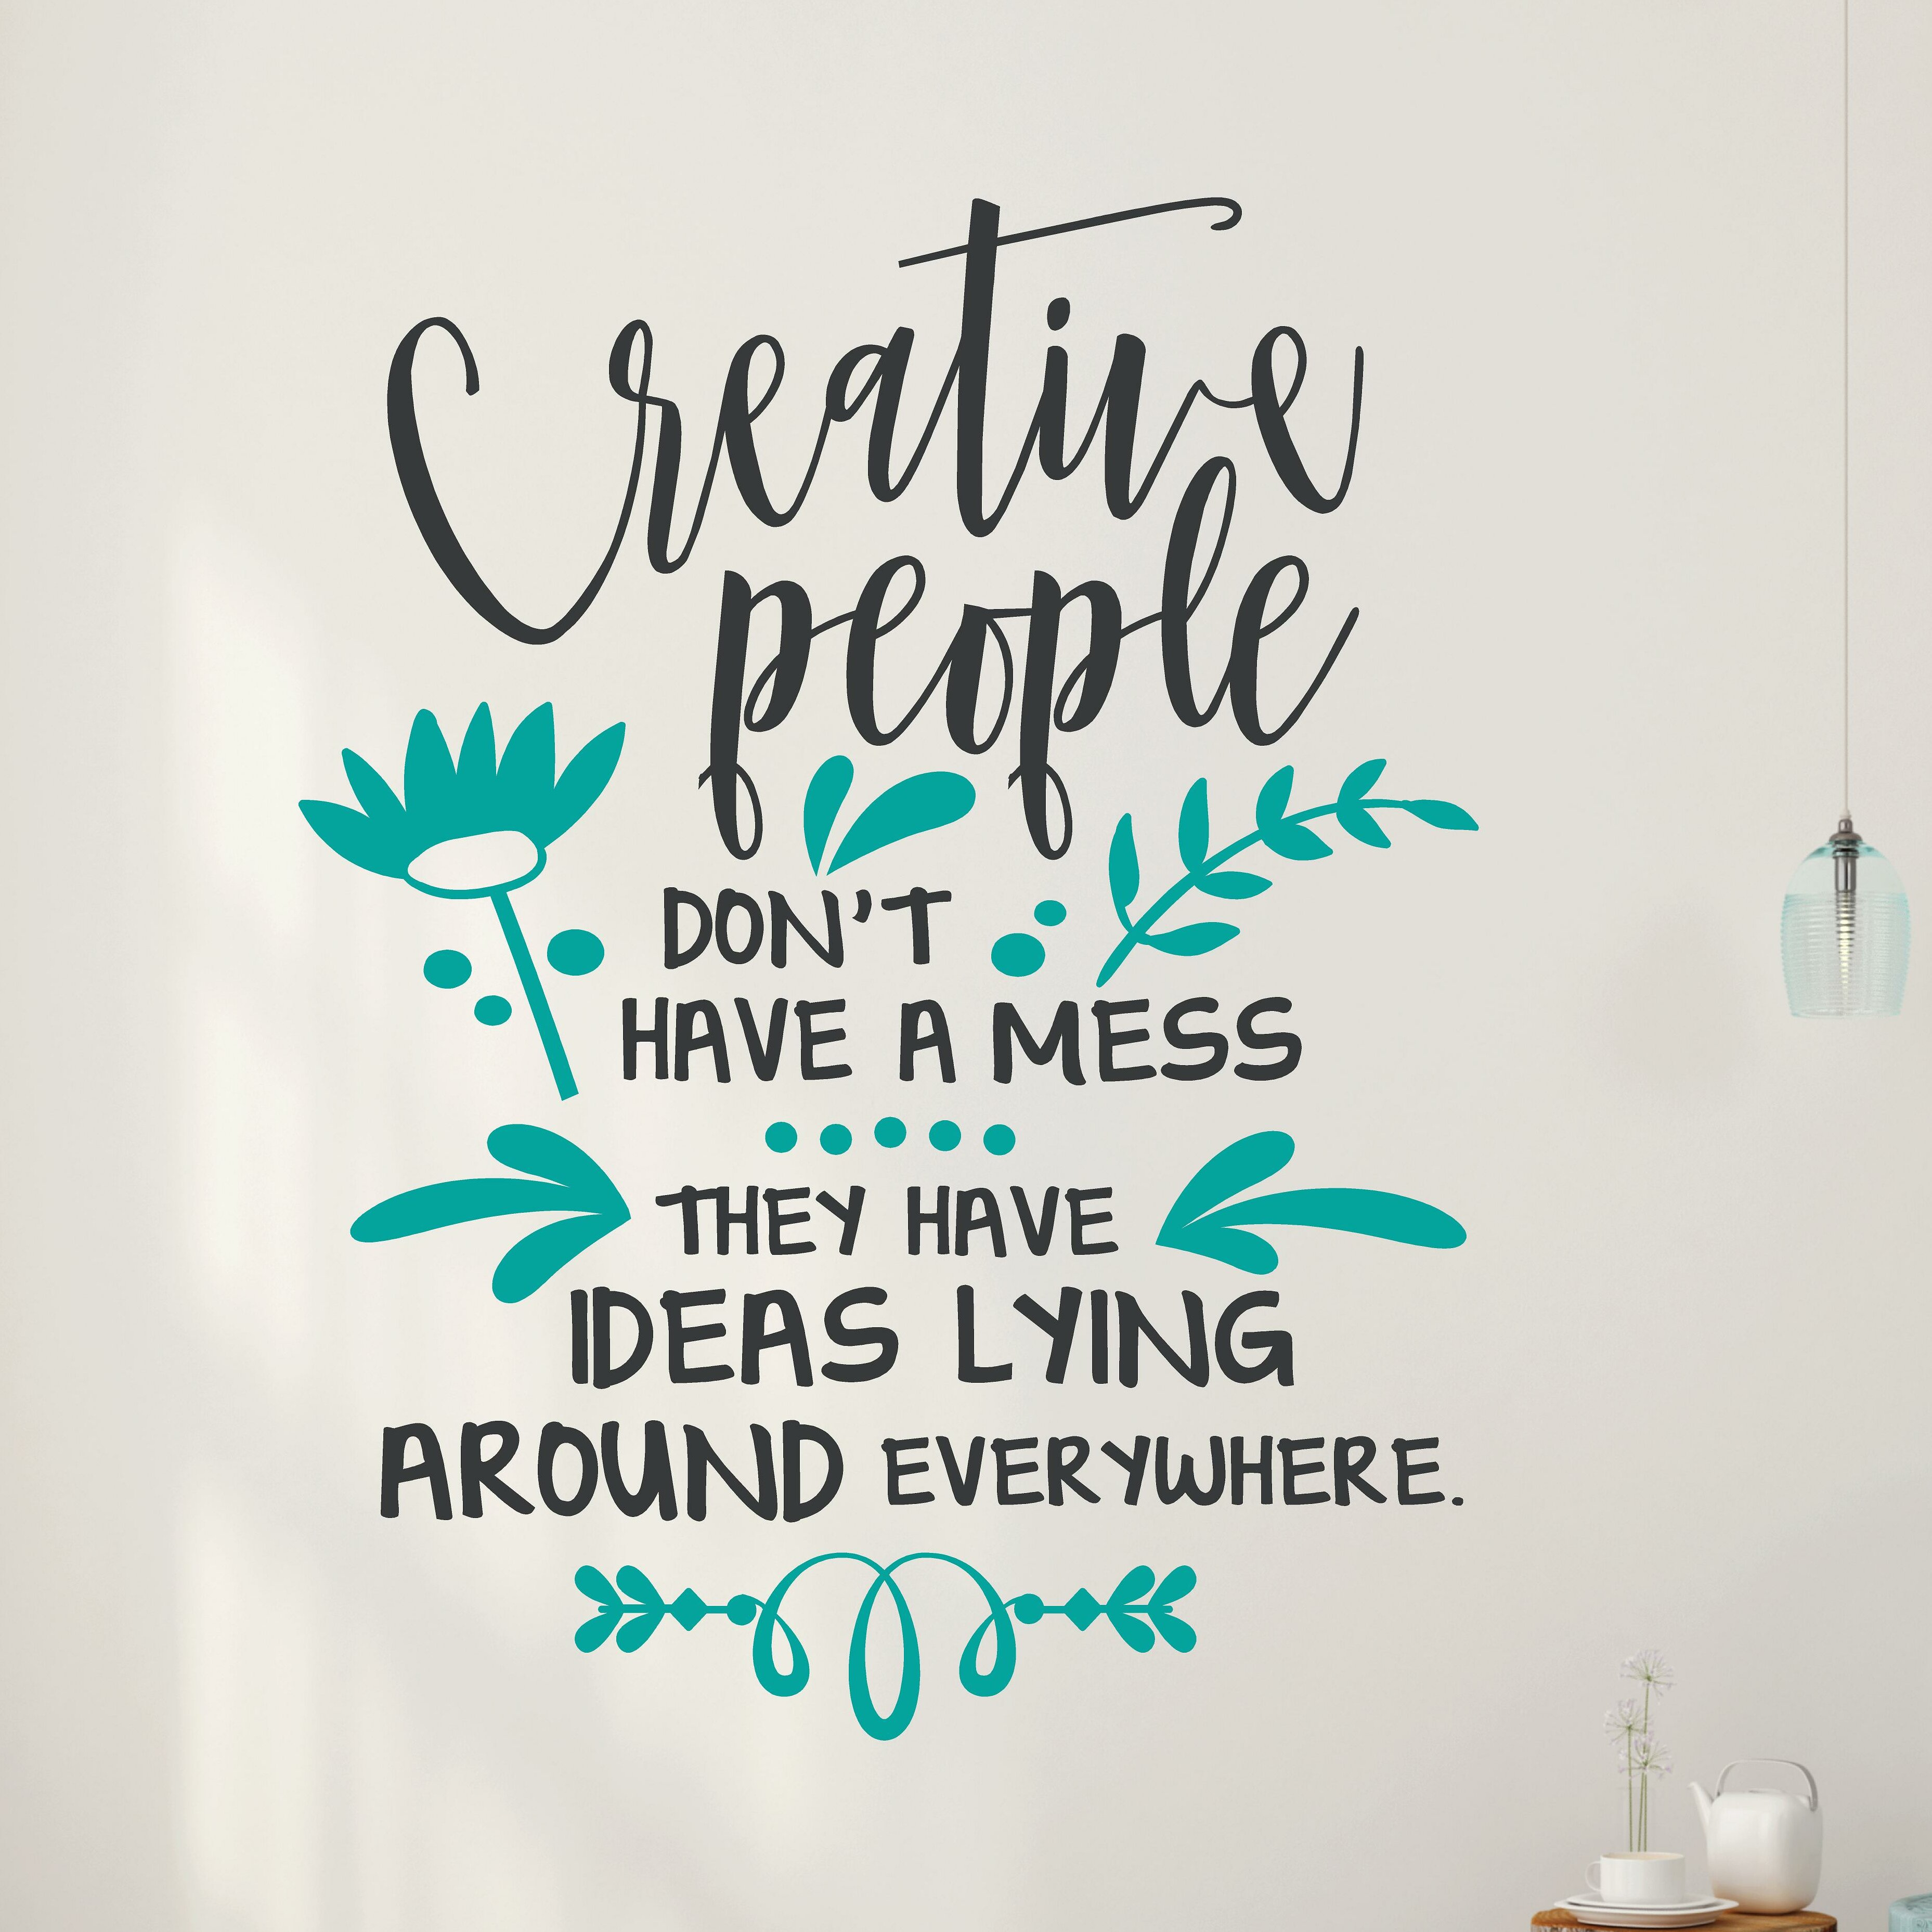 Creative People Don't Have a Mess Letters Words Home Wall Decals